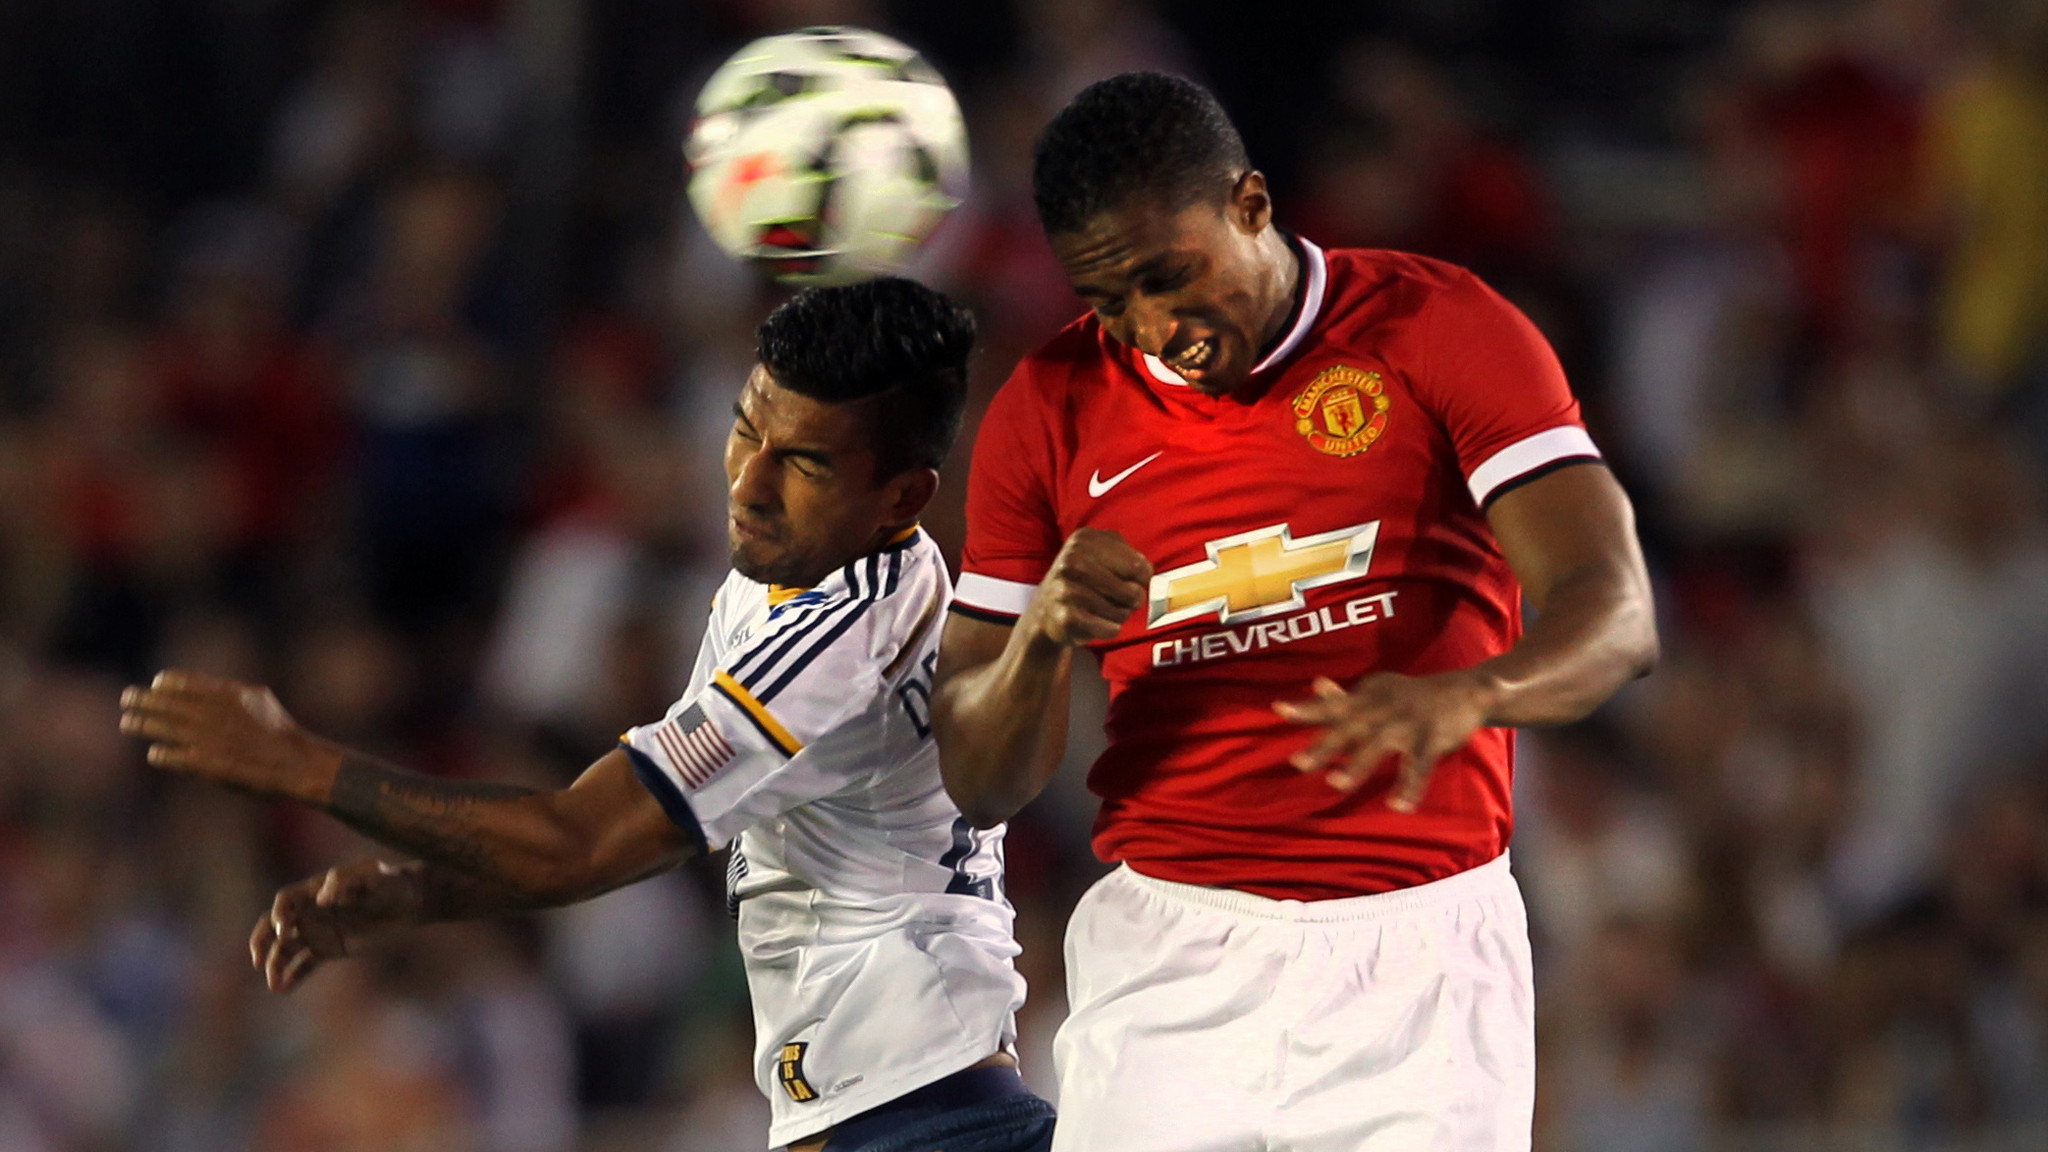 Manchester United puts on a show in 7-0 win over Galaxy